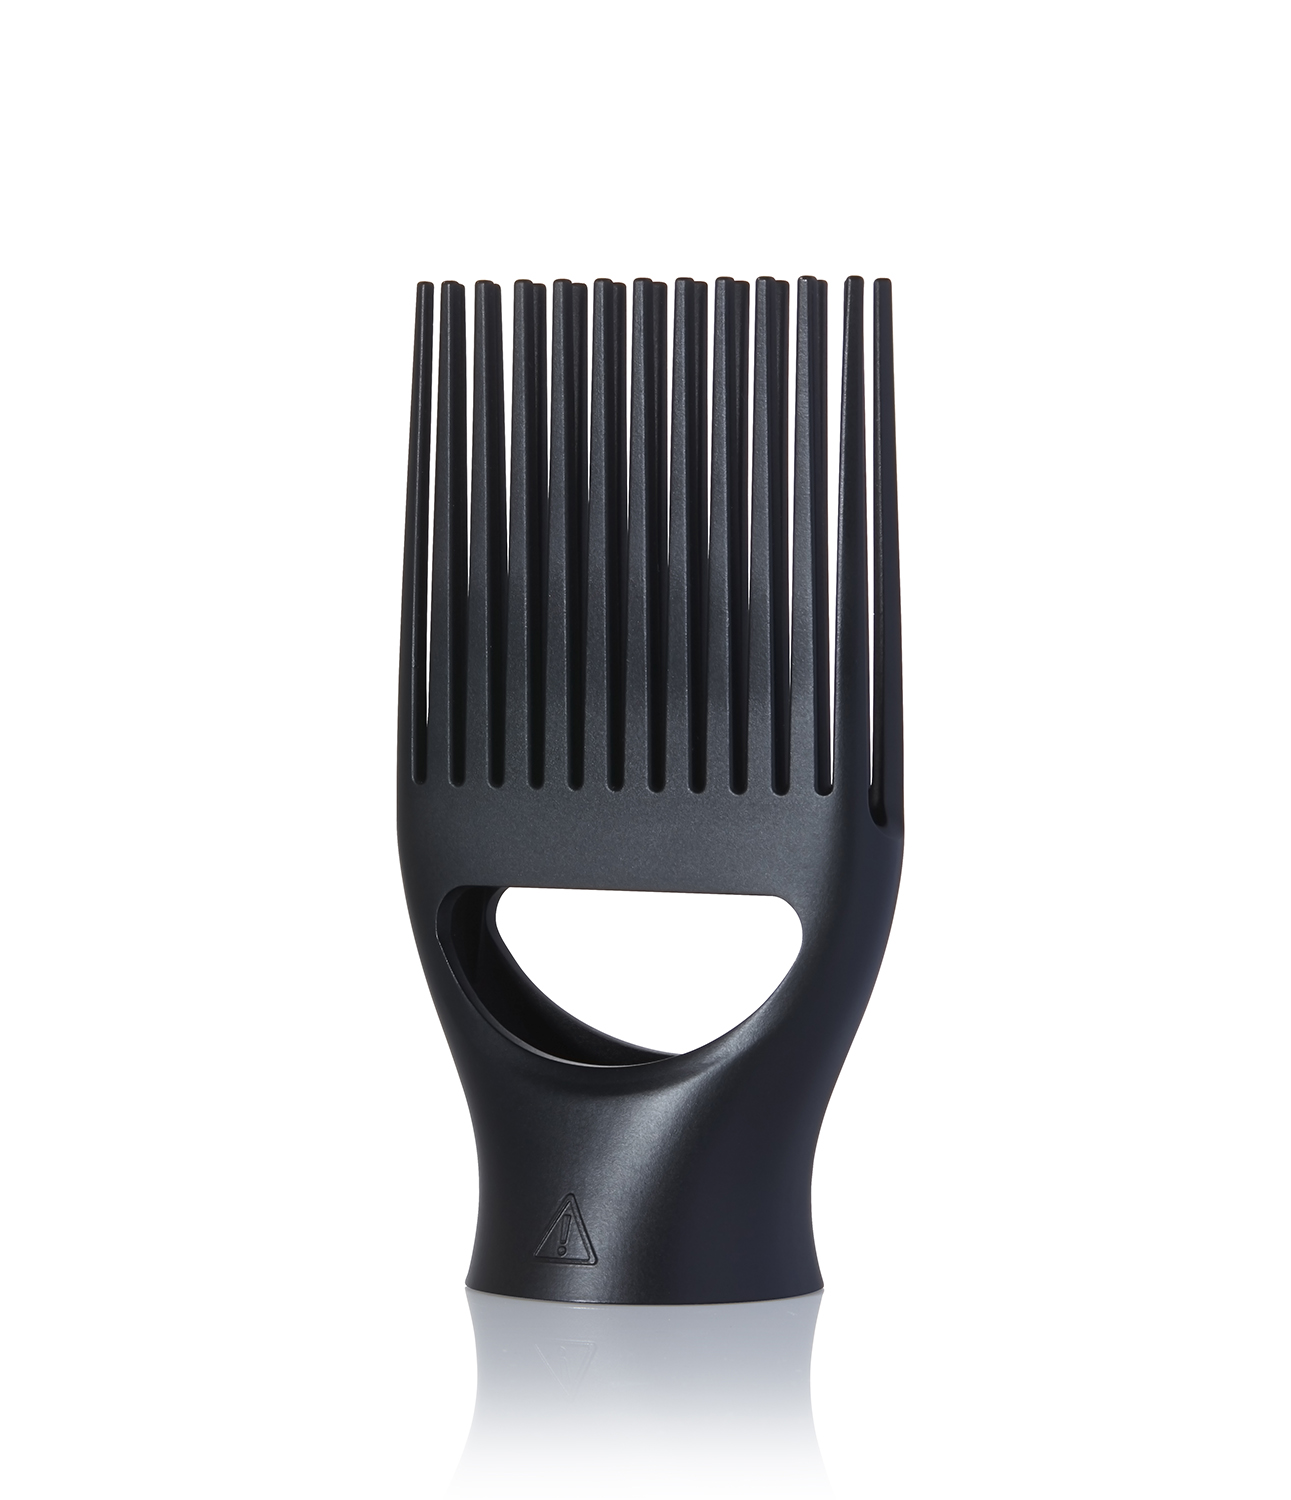 GHD-HELIOS, GHD-UNVEILS-NEW-HELIOS-PROFESSIONAL-HAIRDRYER-ATTACHMENTS